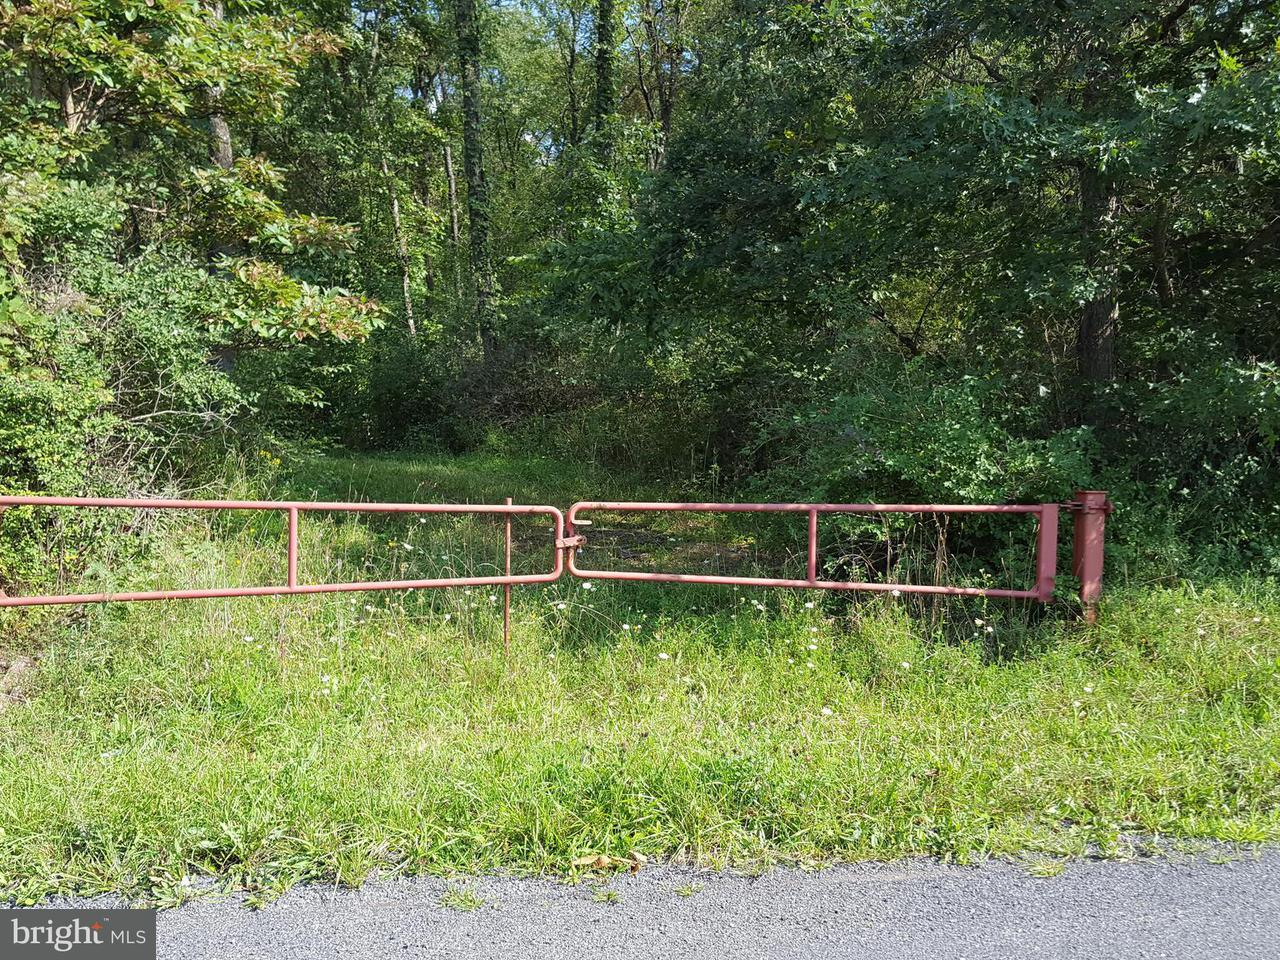 Land for Sale at Lot 4 Turkey Farm Rd NE Little Orleans, Maryland 21766 United States